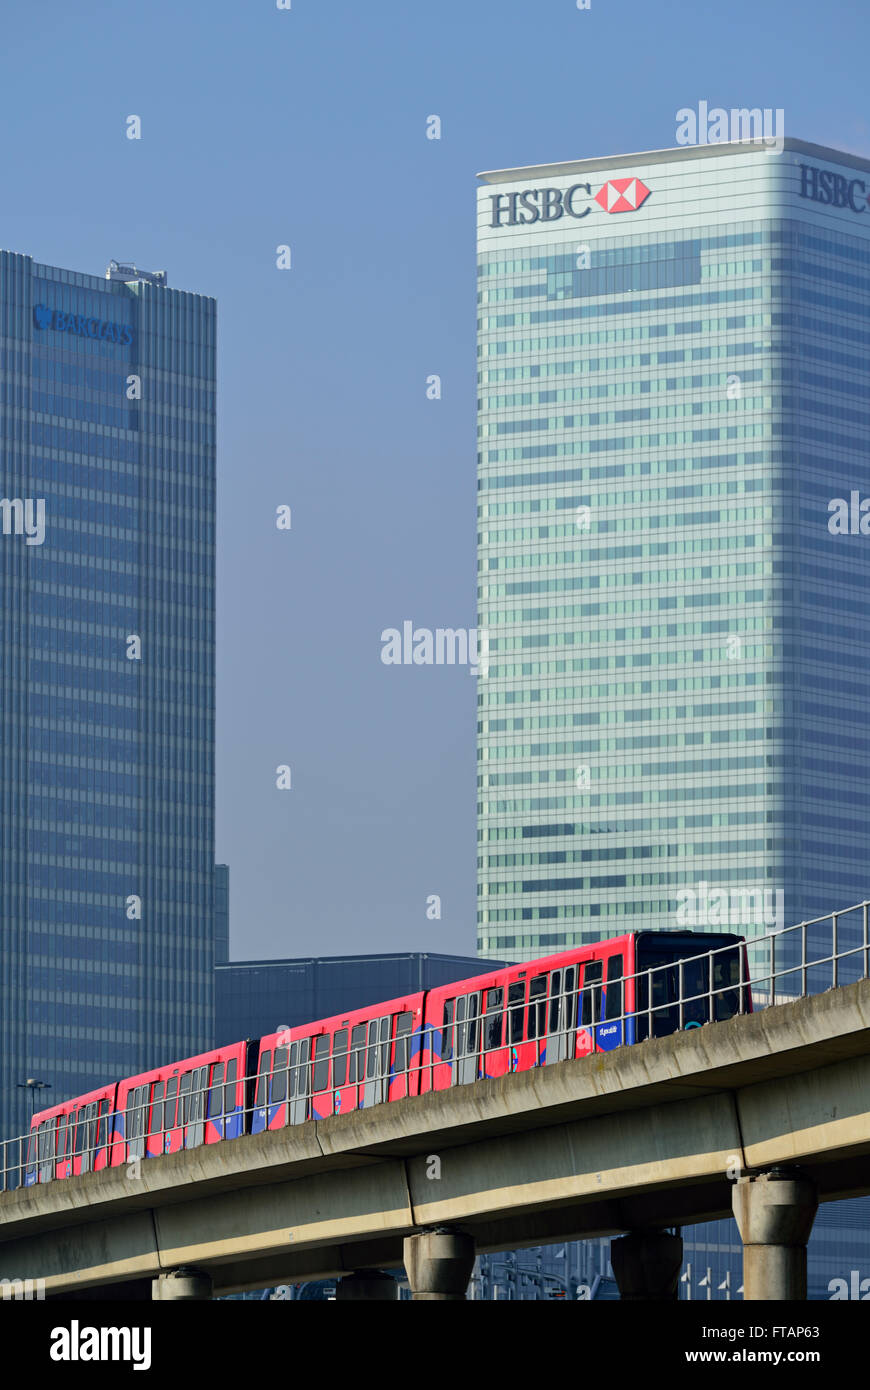 Docklands Light Railway, Canary Wharf, London E14, United Kingdom - Stock Image